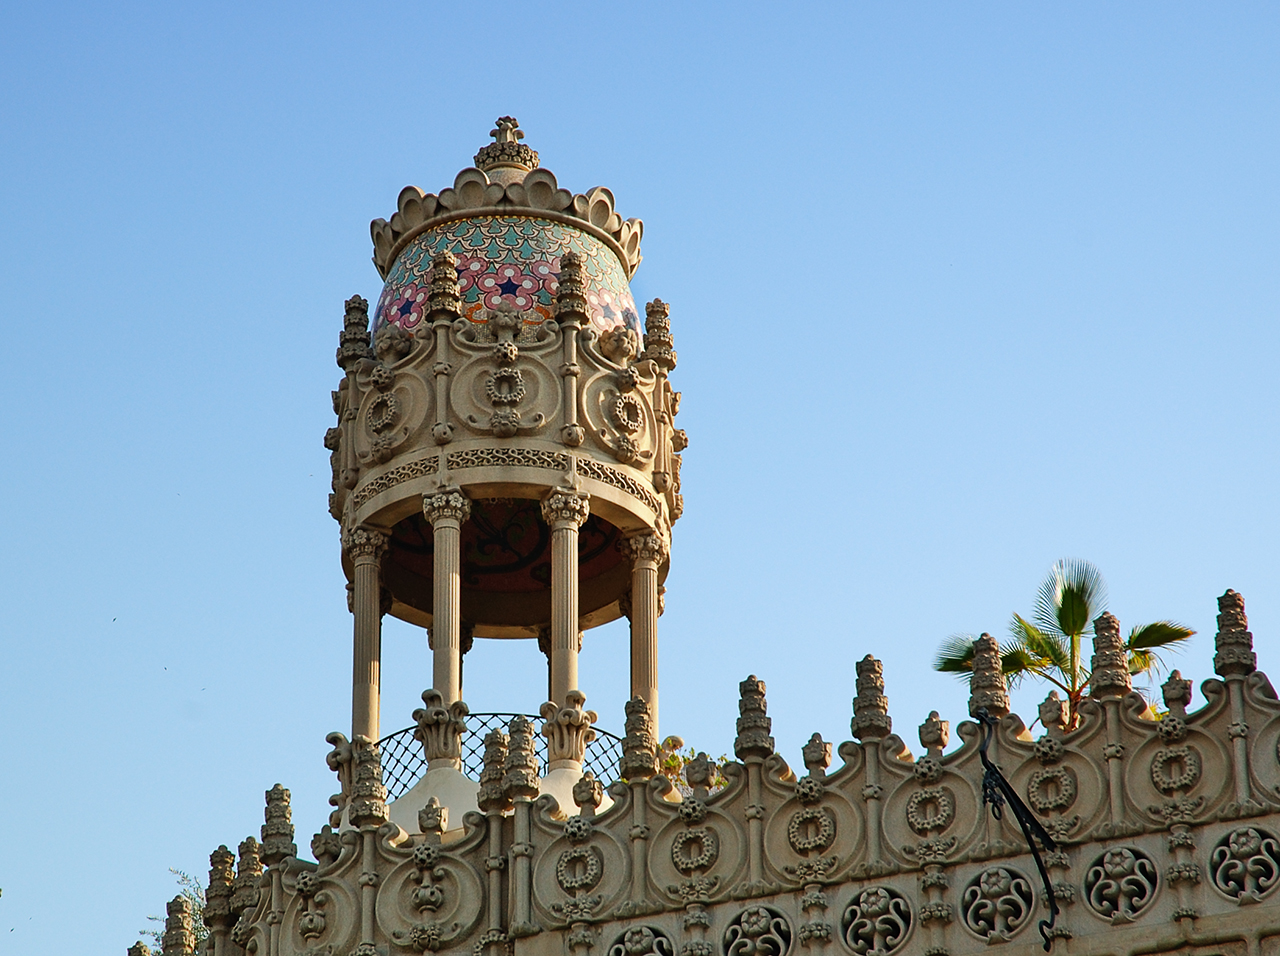 Detail of Casa Lleó i Morera at Passeig de Gracia 35, Barcelona, Spain